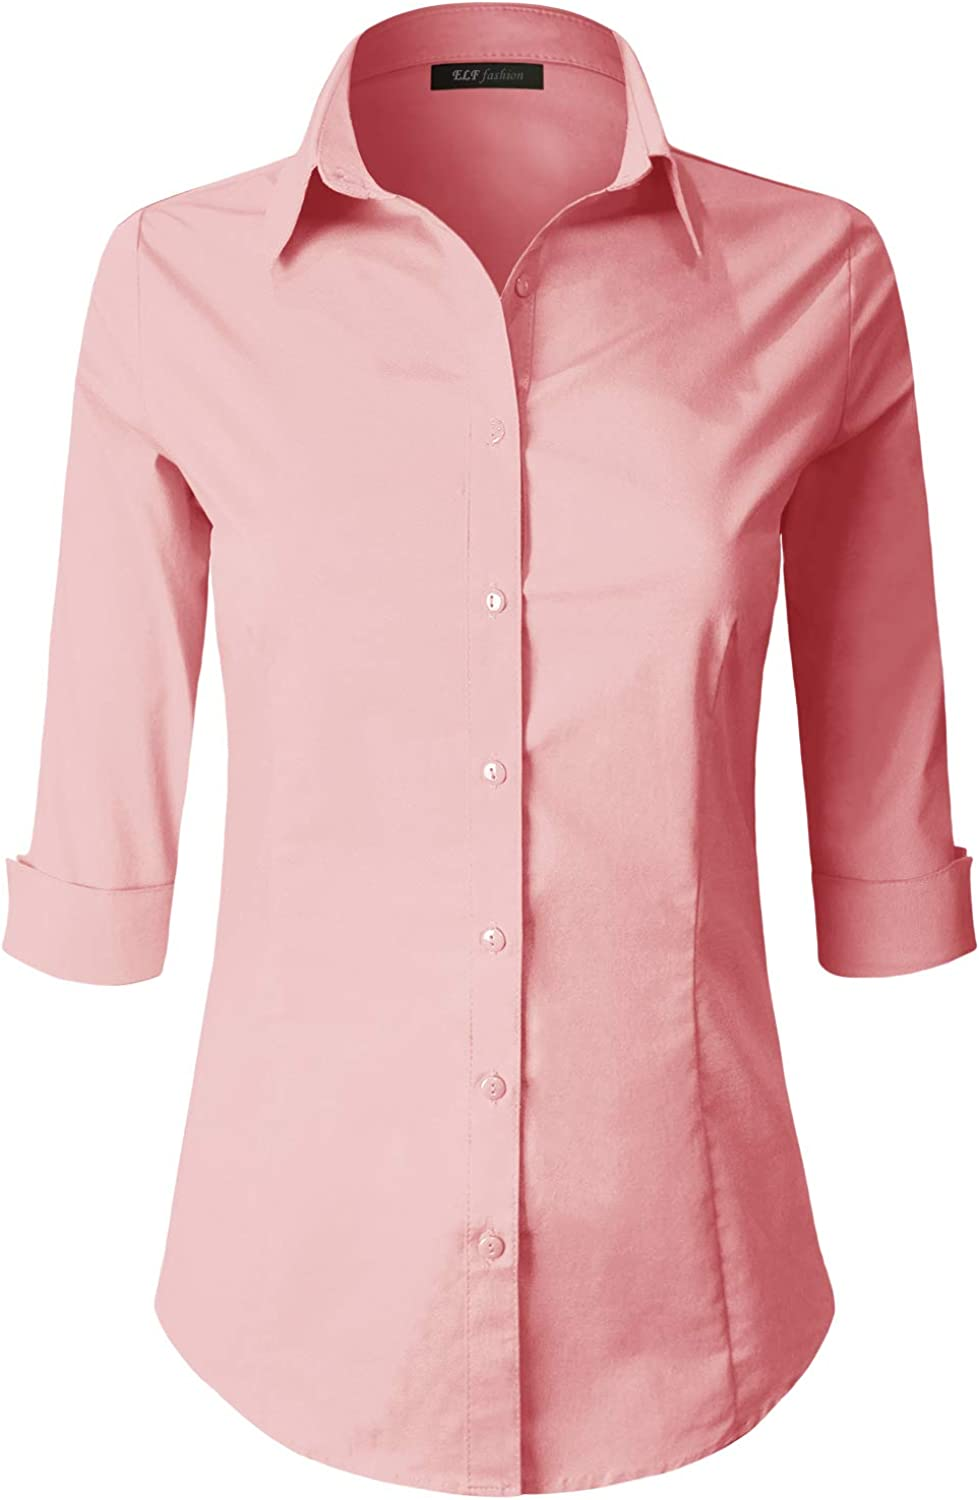 ELF FASHION 3/4 Sleeve Stretchy Button Down Collar Office Formal Casual Shirt Blouse for Women (Size S~6XL)